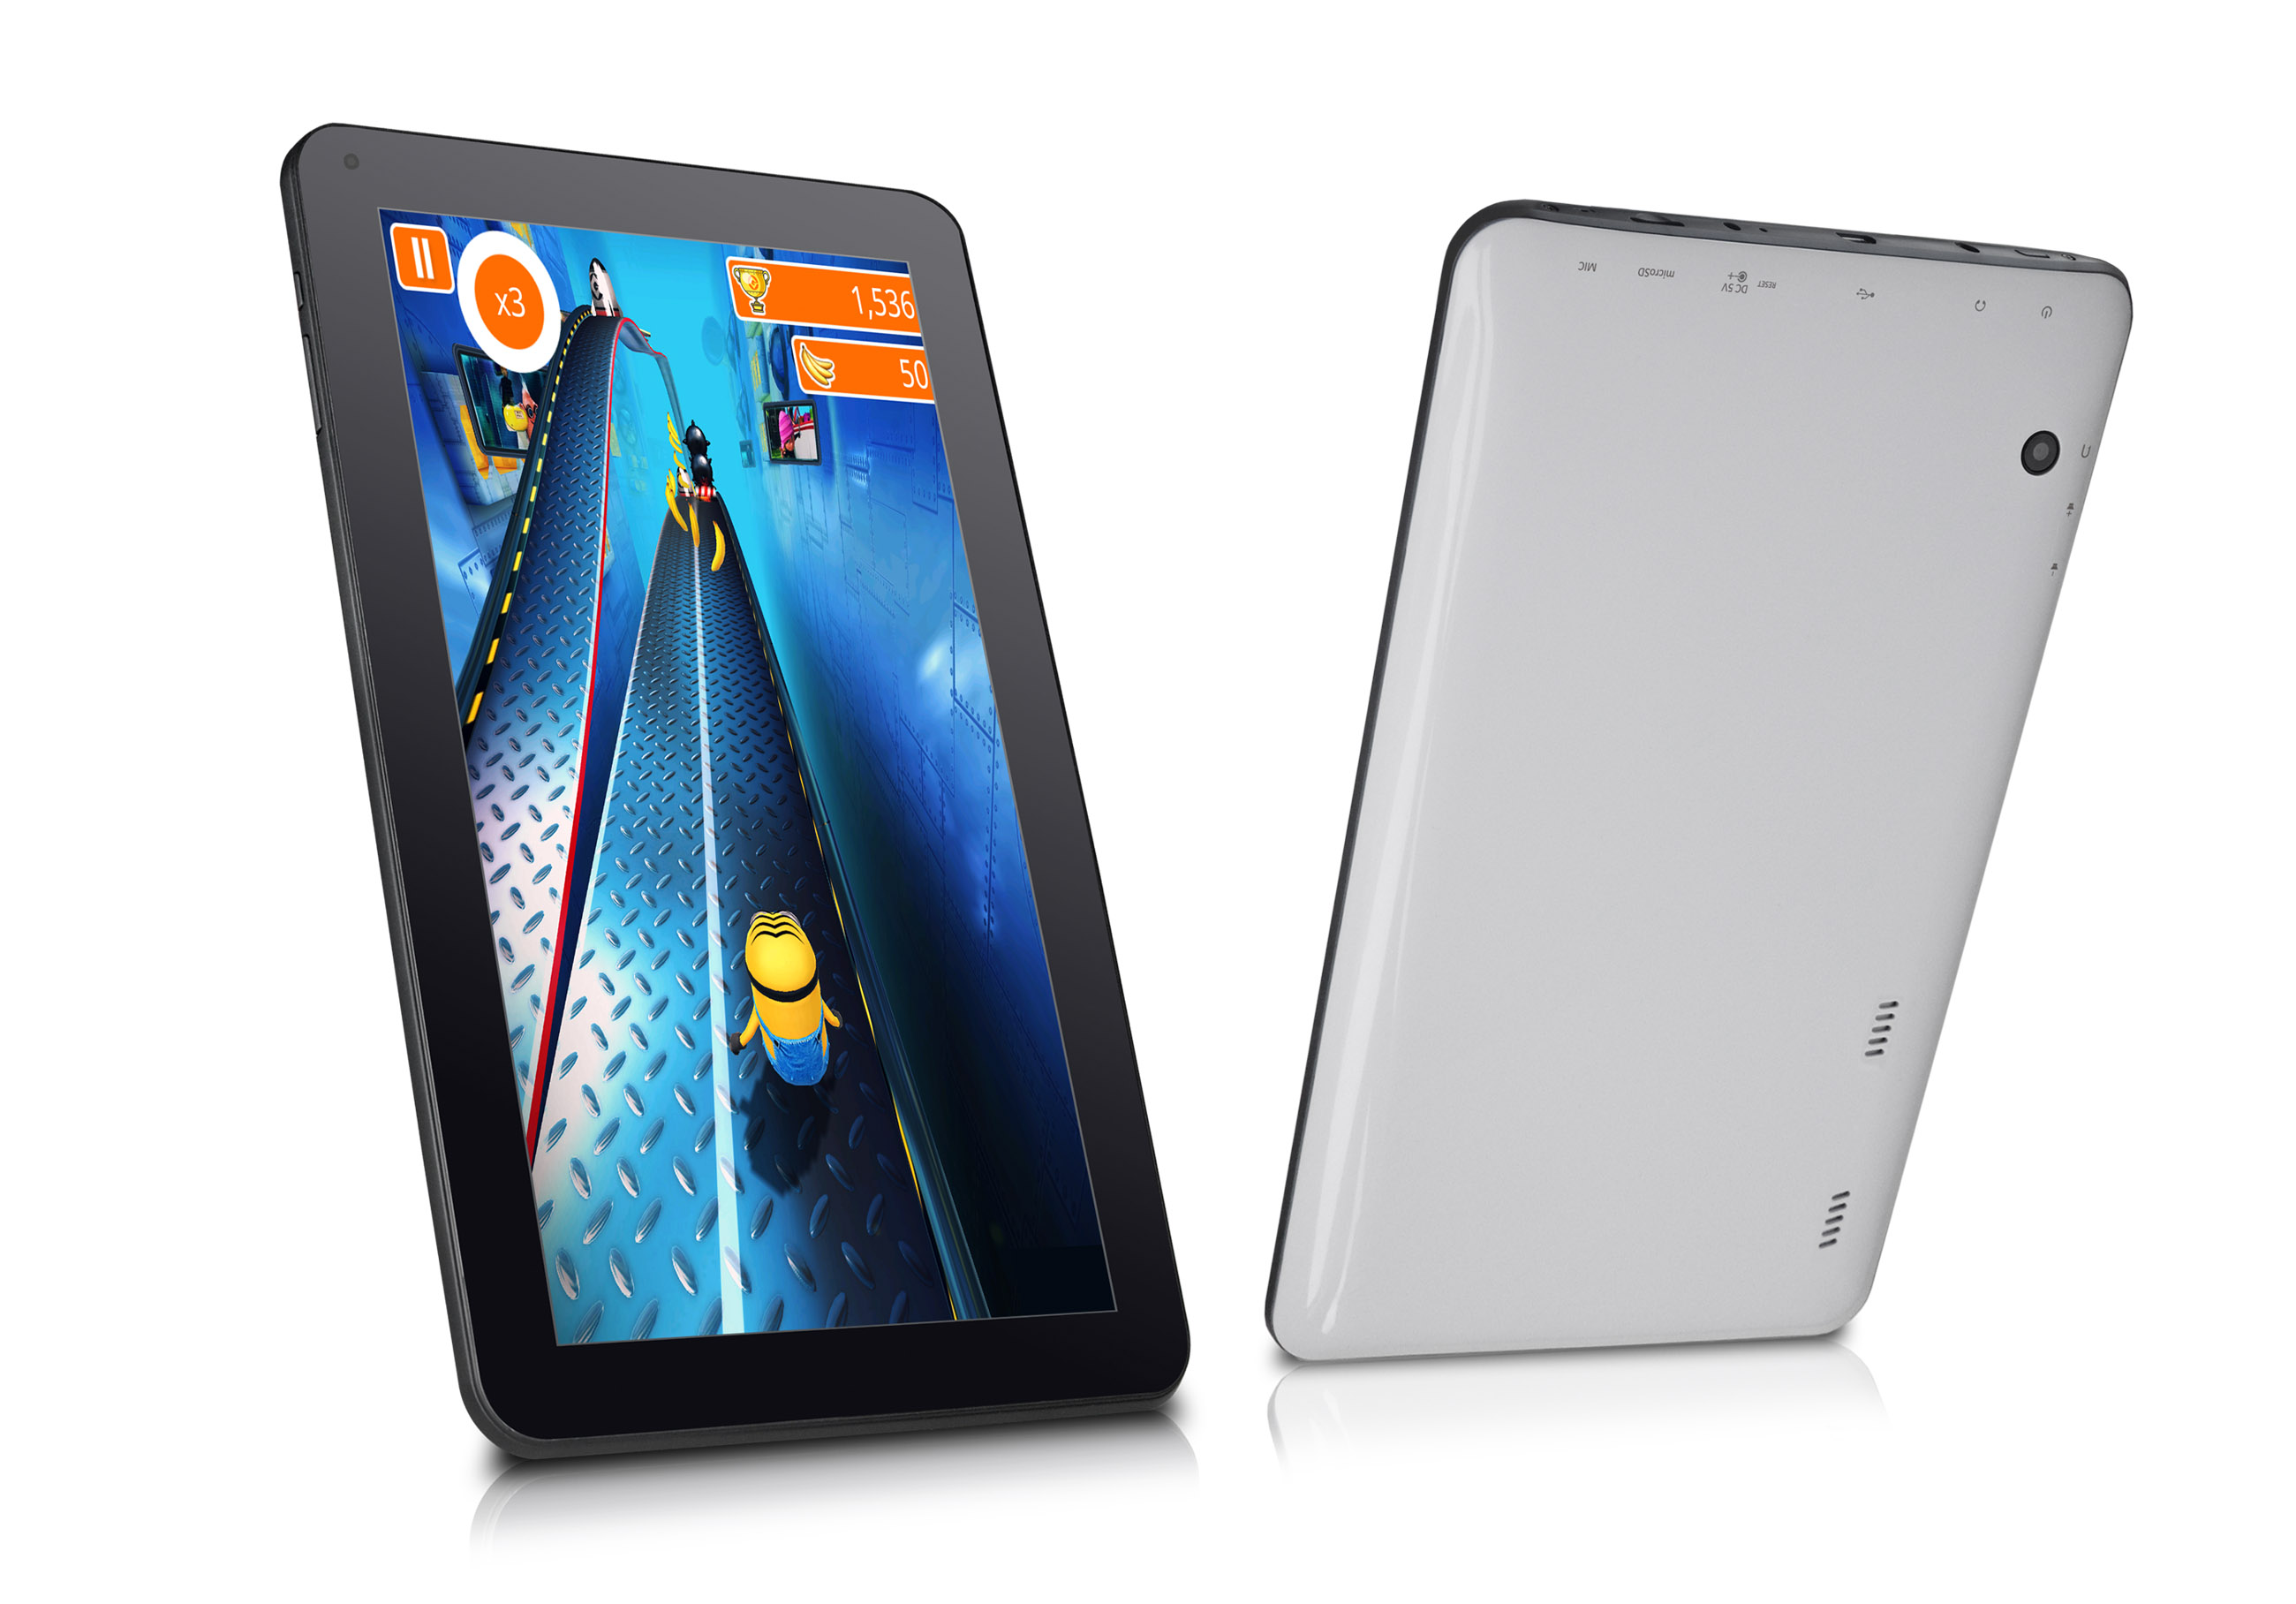 10 tablet hi resolution 8 0 gb on board memory capacitive touch